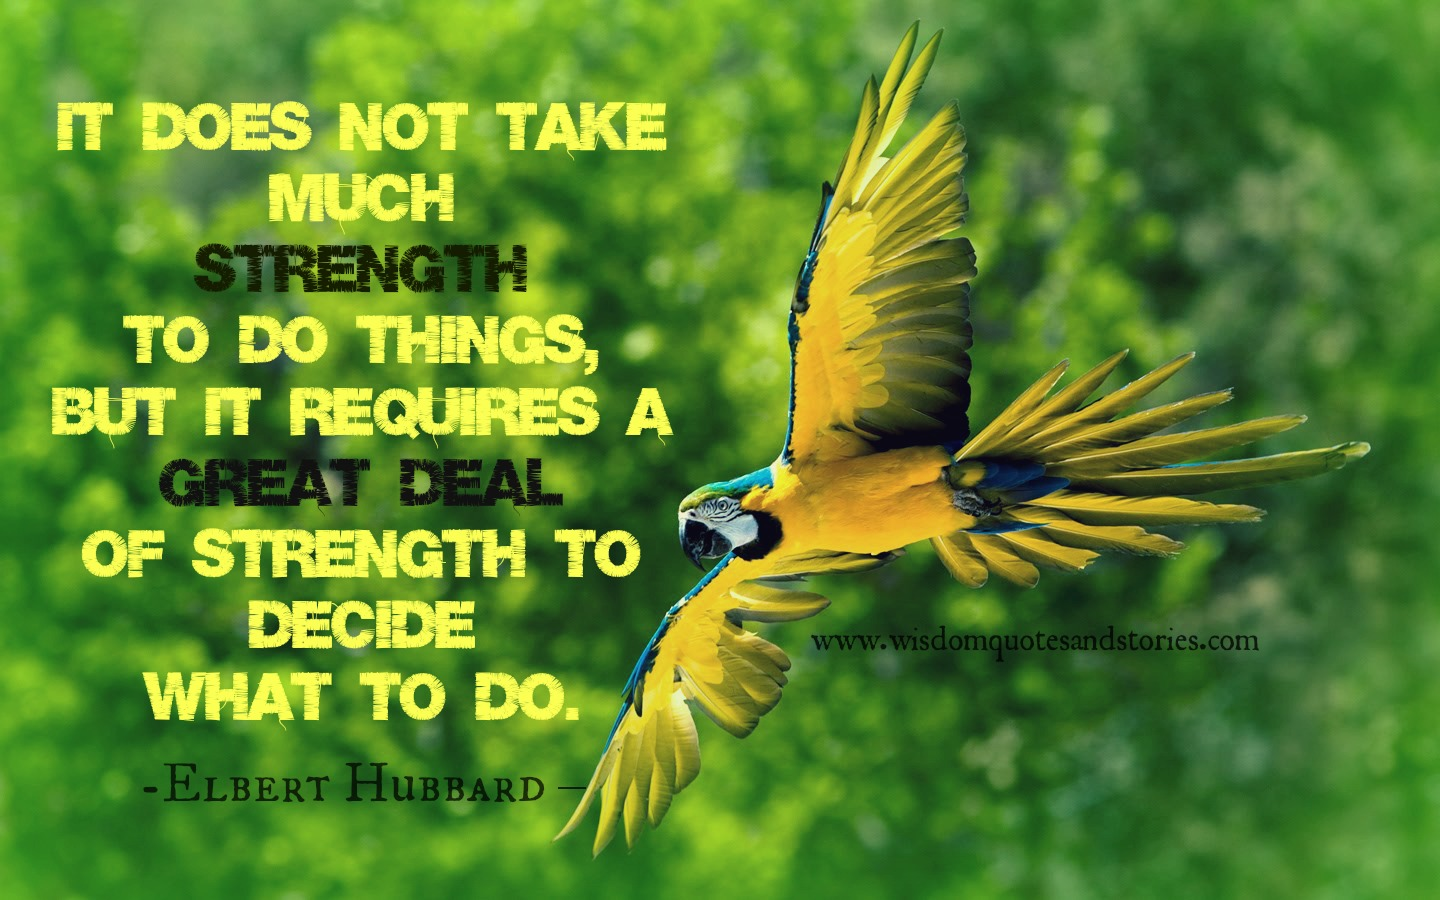 It does not take much to do things, but it requires a great strength to decide what to do. Elbert Hubbard